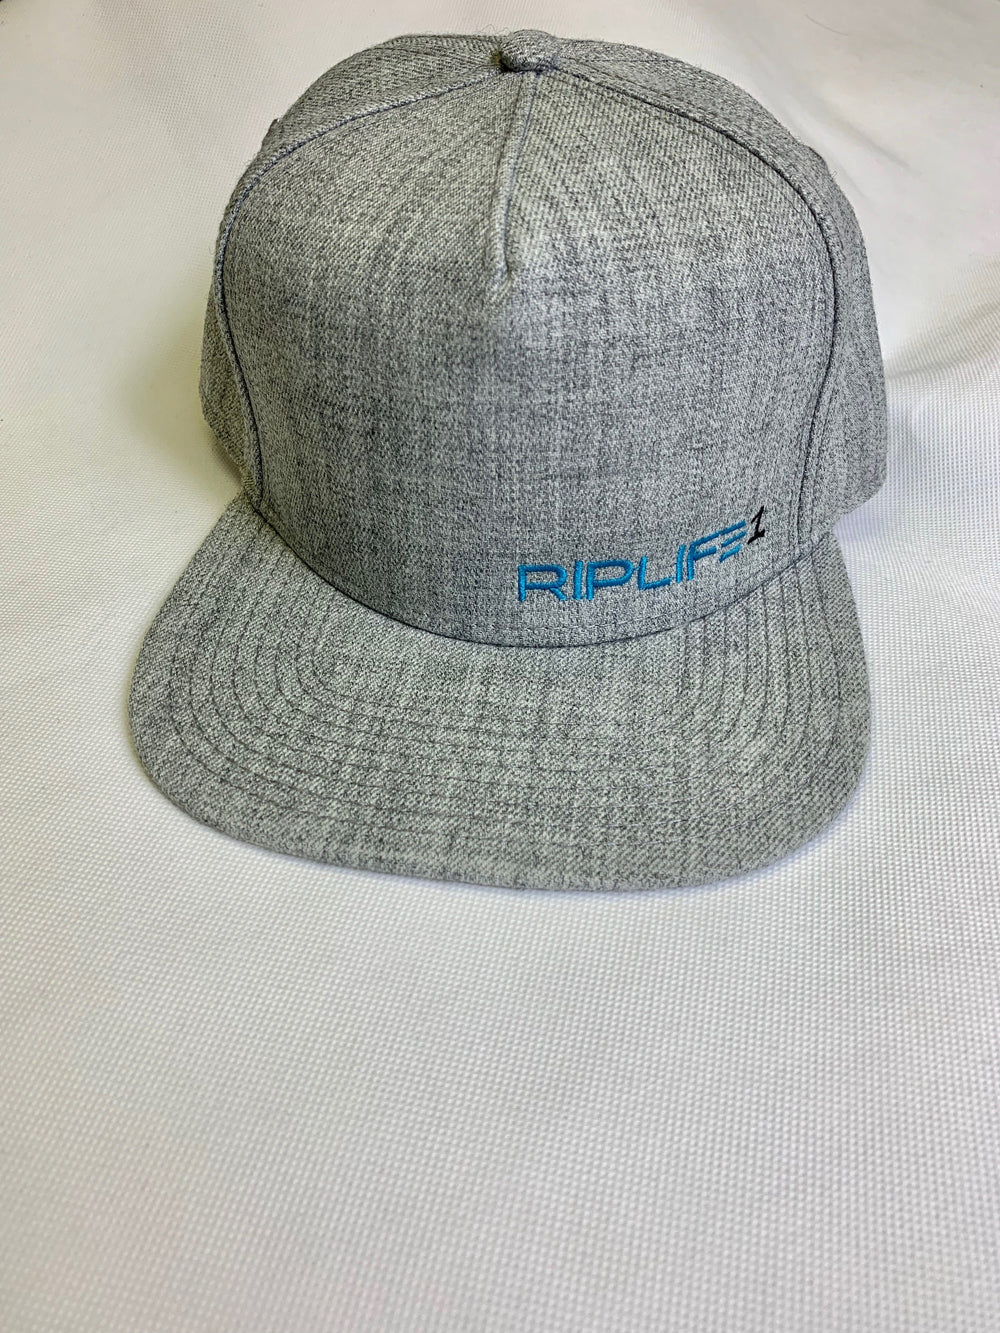 Flat Bill Snap Back  - OFFSET RIPLIFE1 - RIPLIFE1